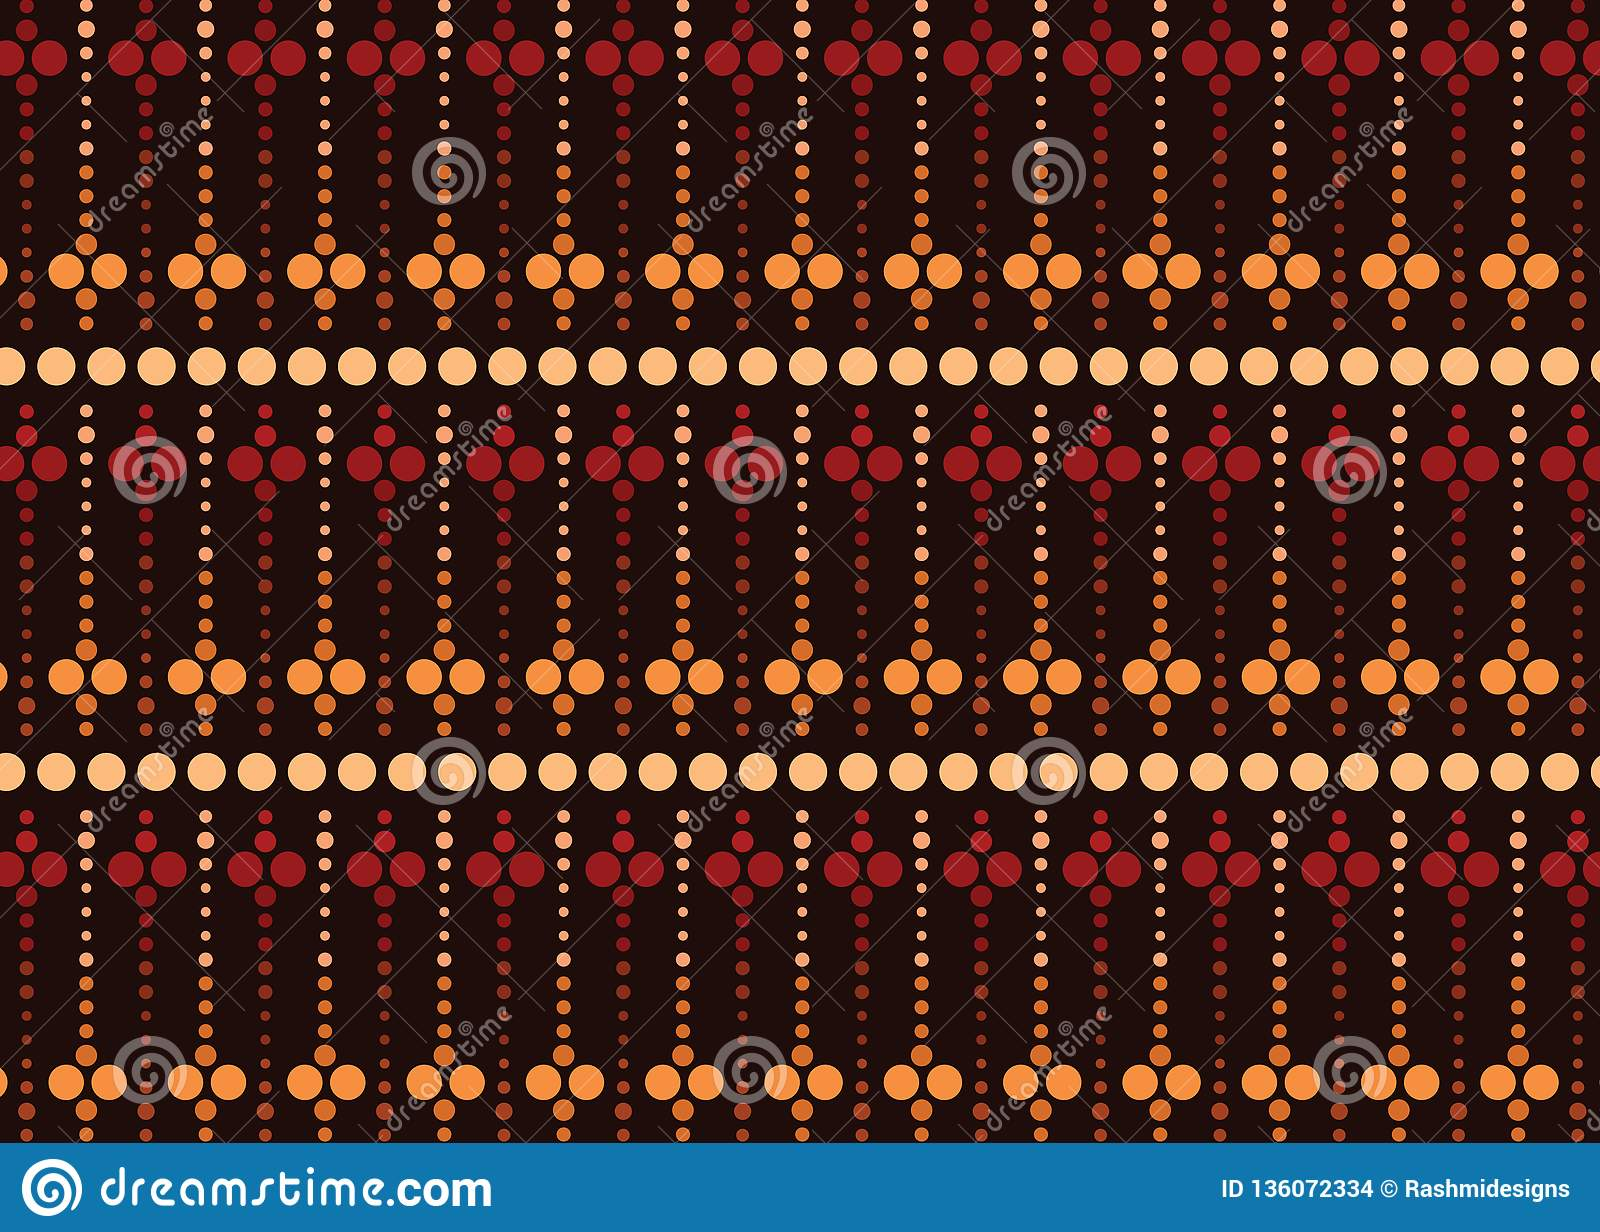 Aboriginal Dot Art Vector Seamless Pattern Stock Vector